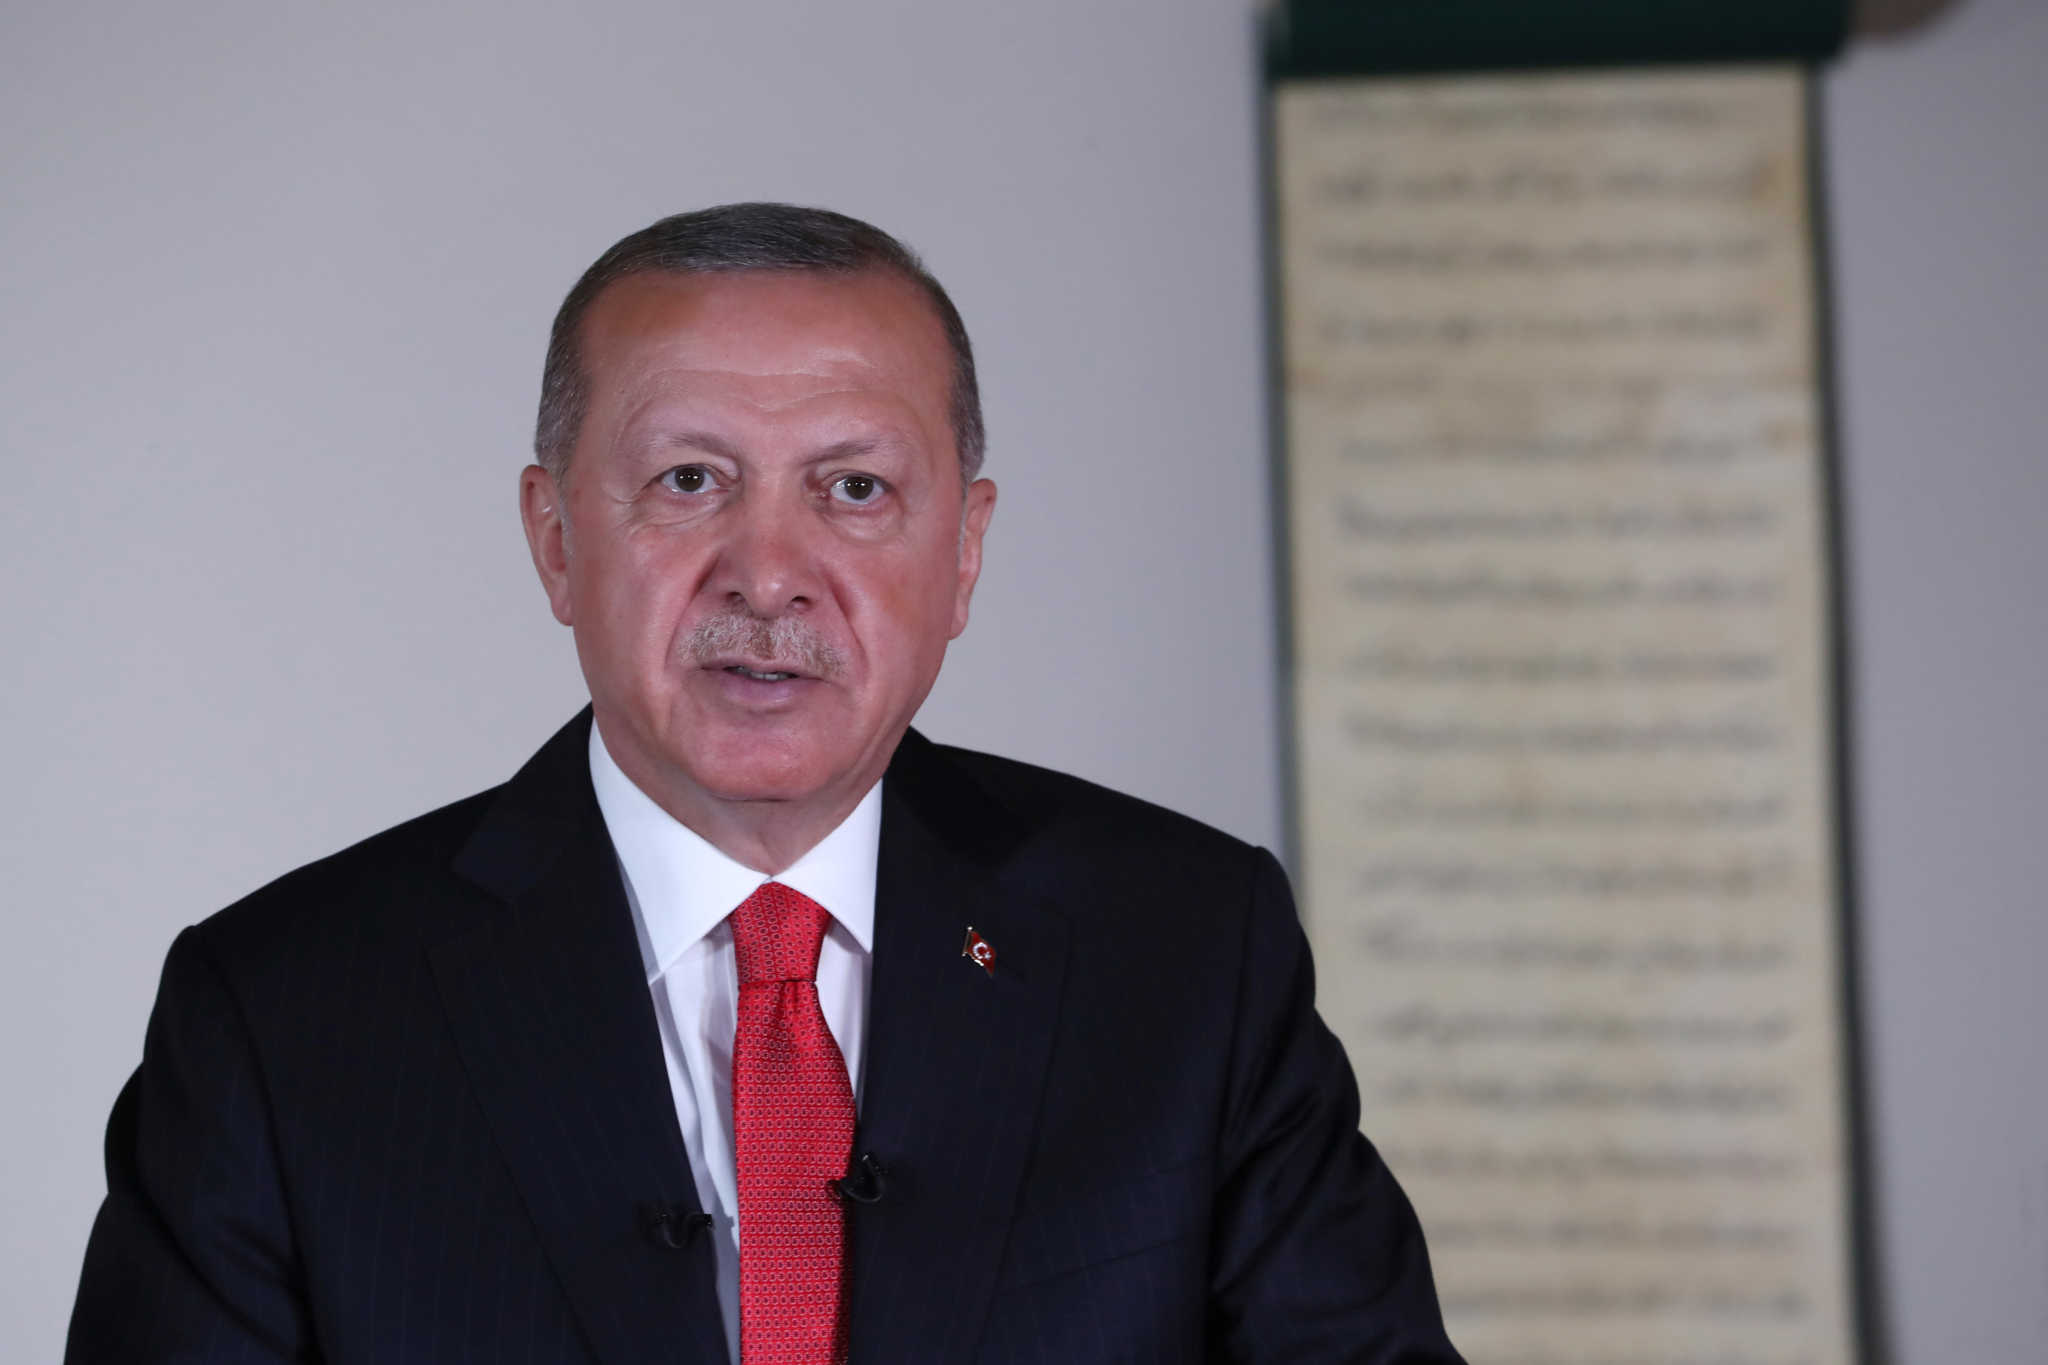 Turkish President Tayyip Erdogan delivers a televised address to the nation in Ankara, Turkey, July 10, 2020. Turkish Presidential Press Office/Handout via REUTERS ATTENTION EDITORS - THIS PICTURE WAS PROVIDED BY A THIRD PARTY. NO RESALES. NO ARCHIVE